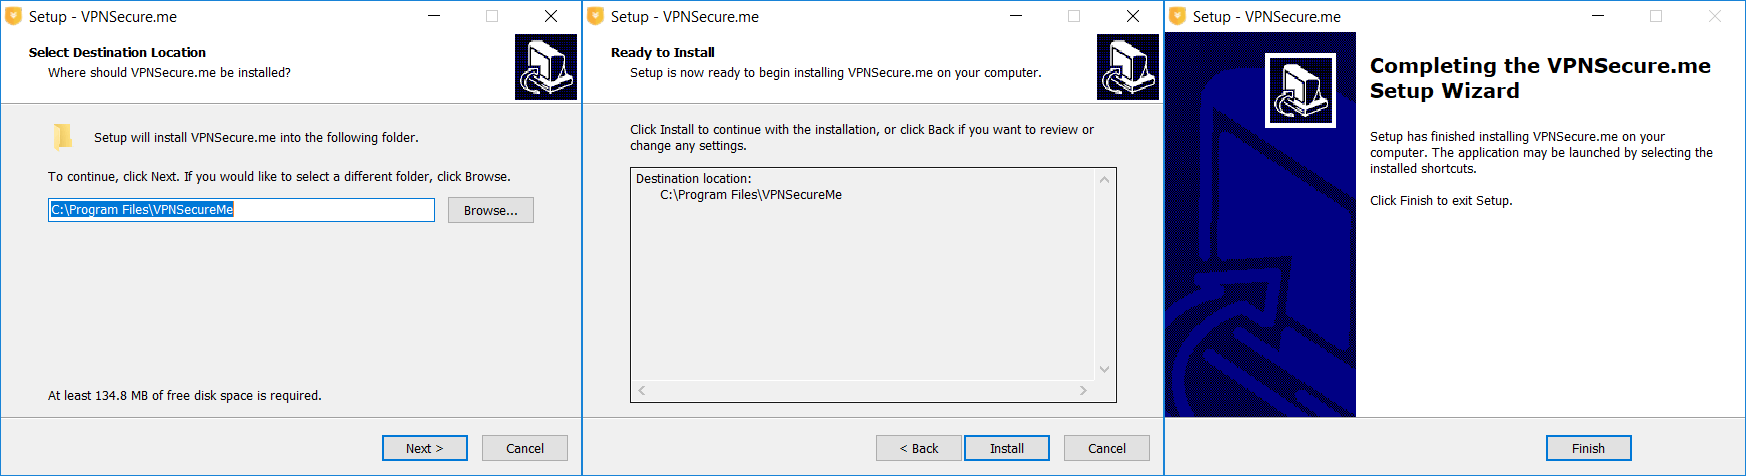 VPNSecure setup and installation